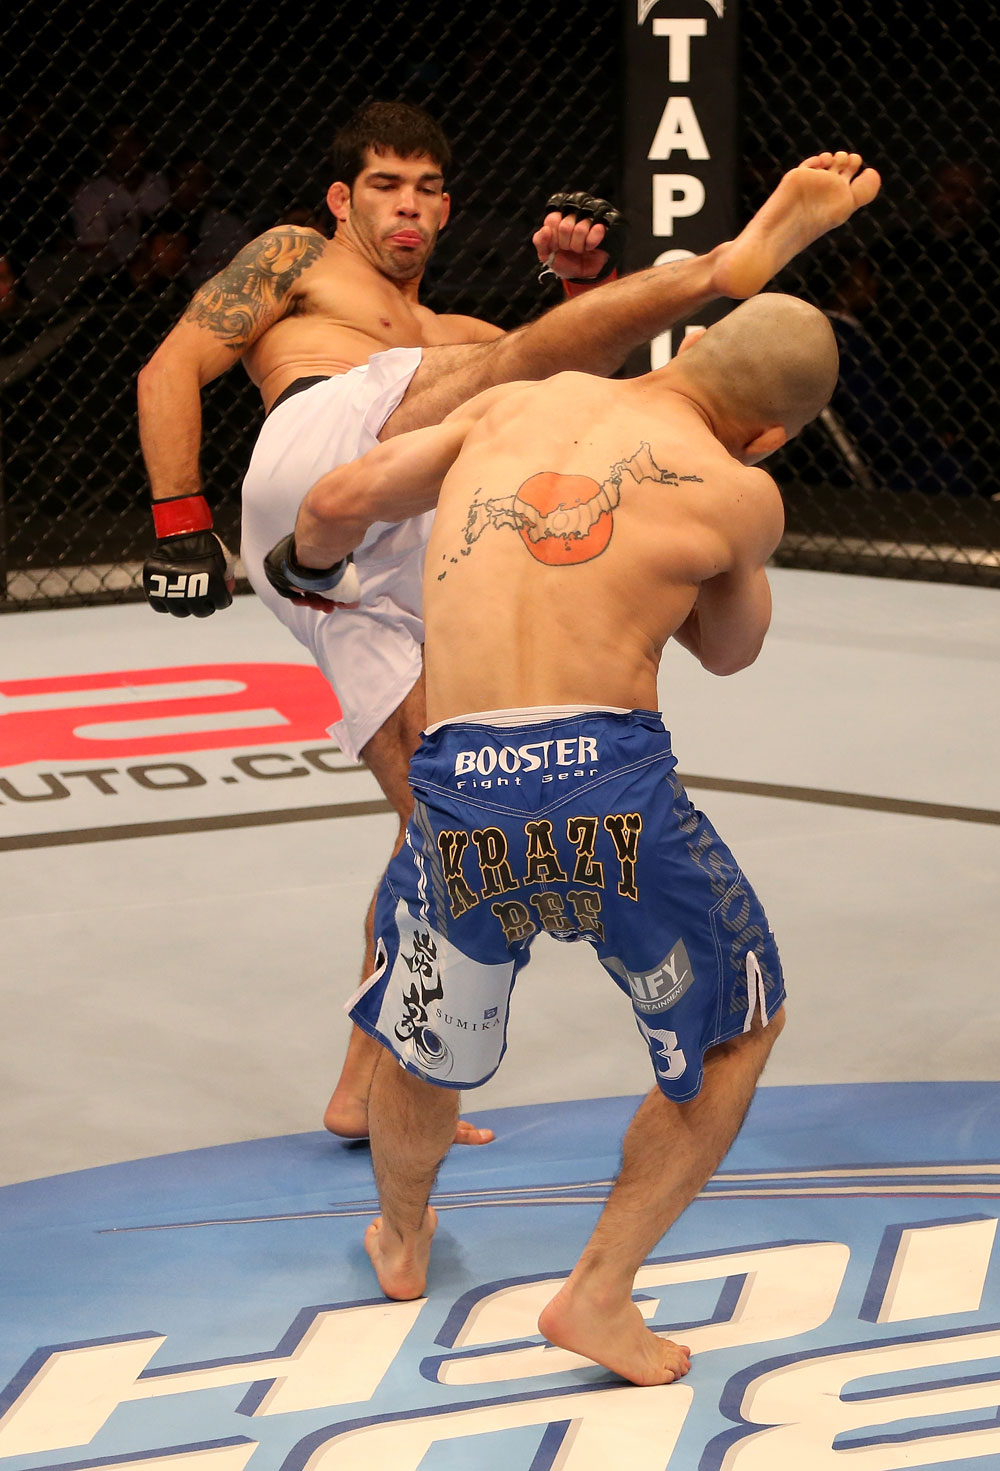 SAN JOSE, CA - JULY 11:   Raphael Assuncao (white shorts) kicks Issei Tamura during their bantamweight bout at HP Pavilion on July 11, 2012 in San Jose, California.  (Photo by Ezra Shaw/Zuffa LLC/Zuffa LLC via Getty Images)  *** Local Caption *** Issei Tamura; Raphael Assuncao